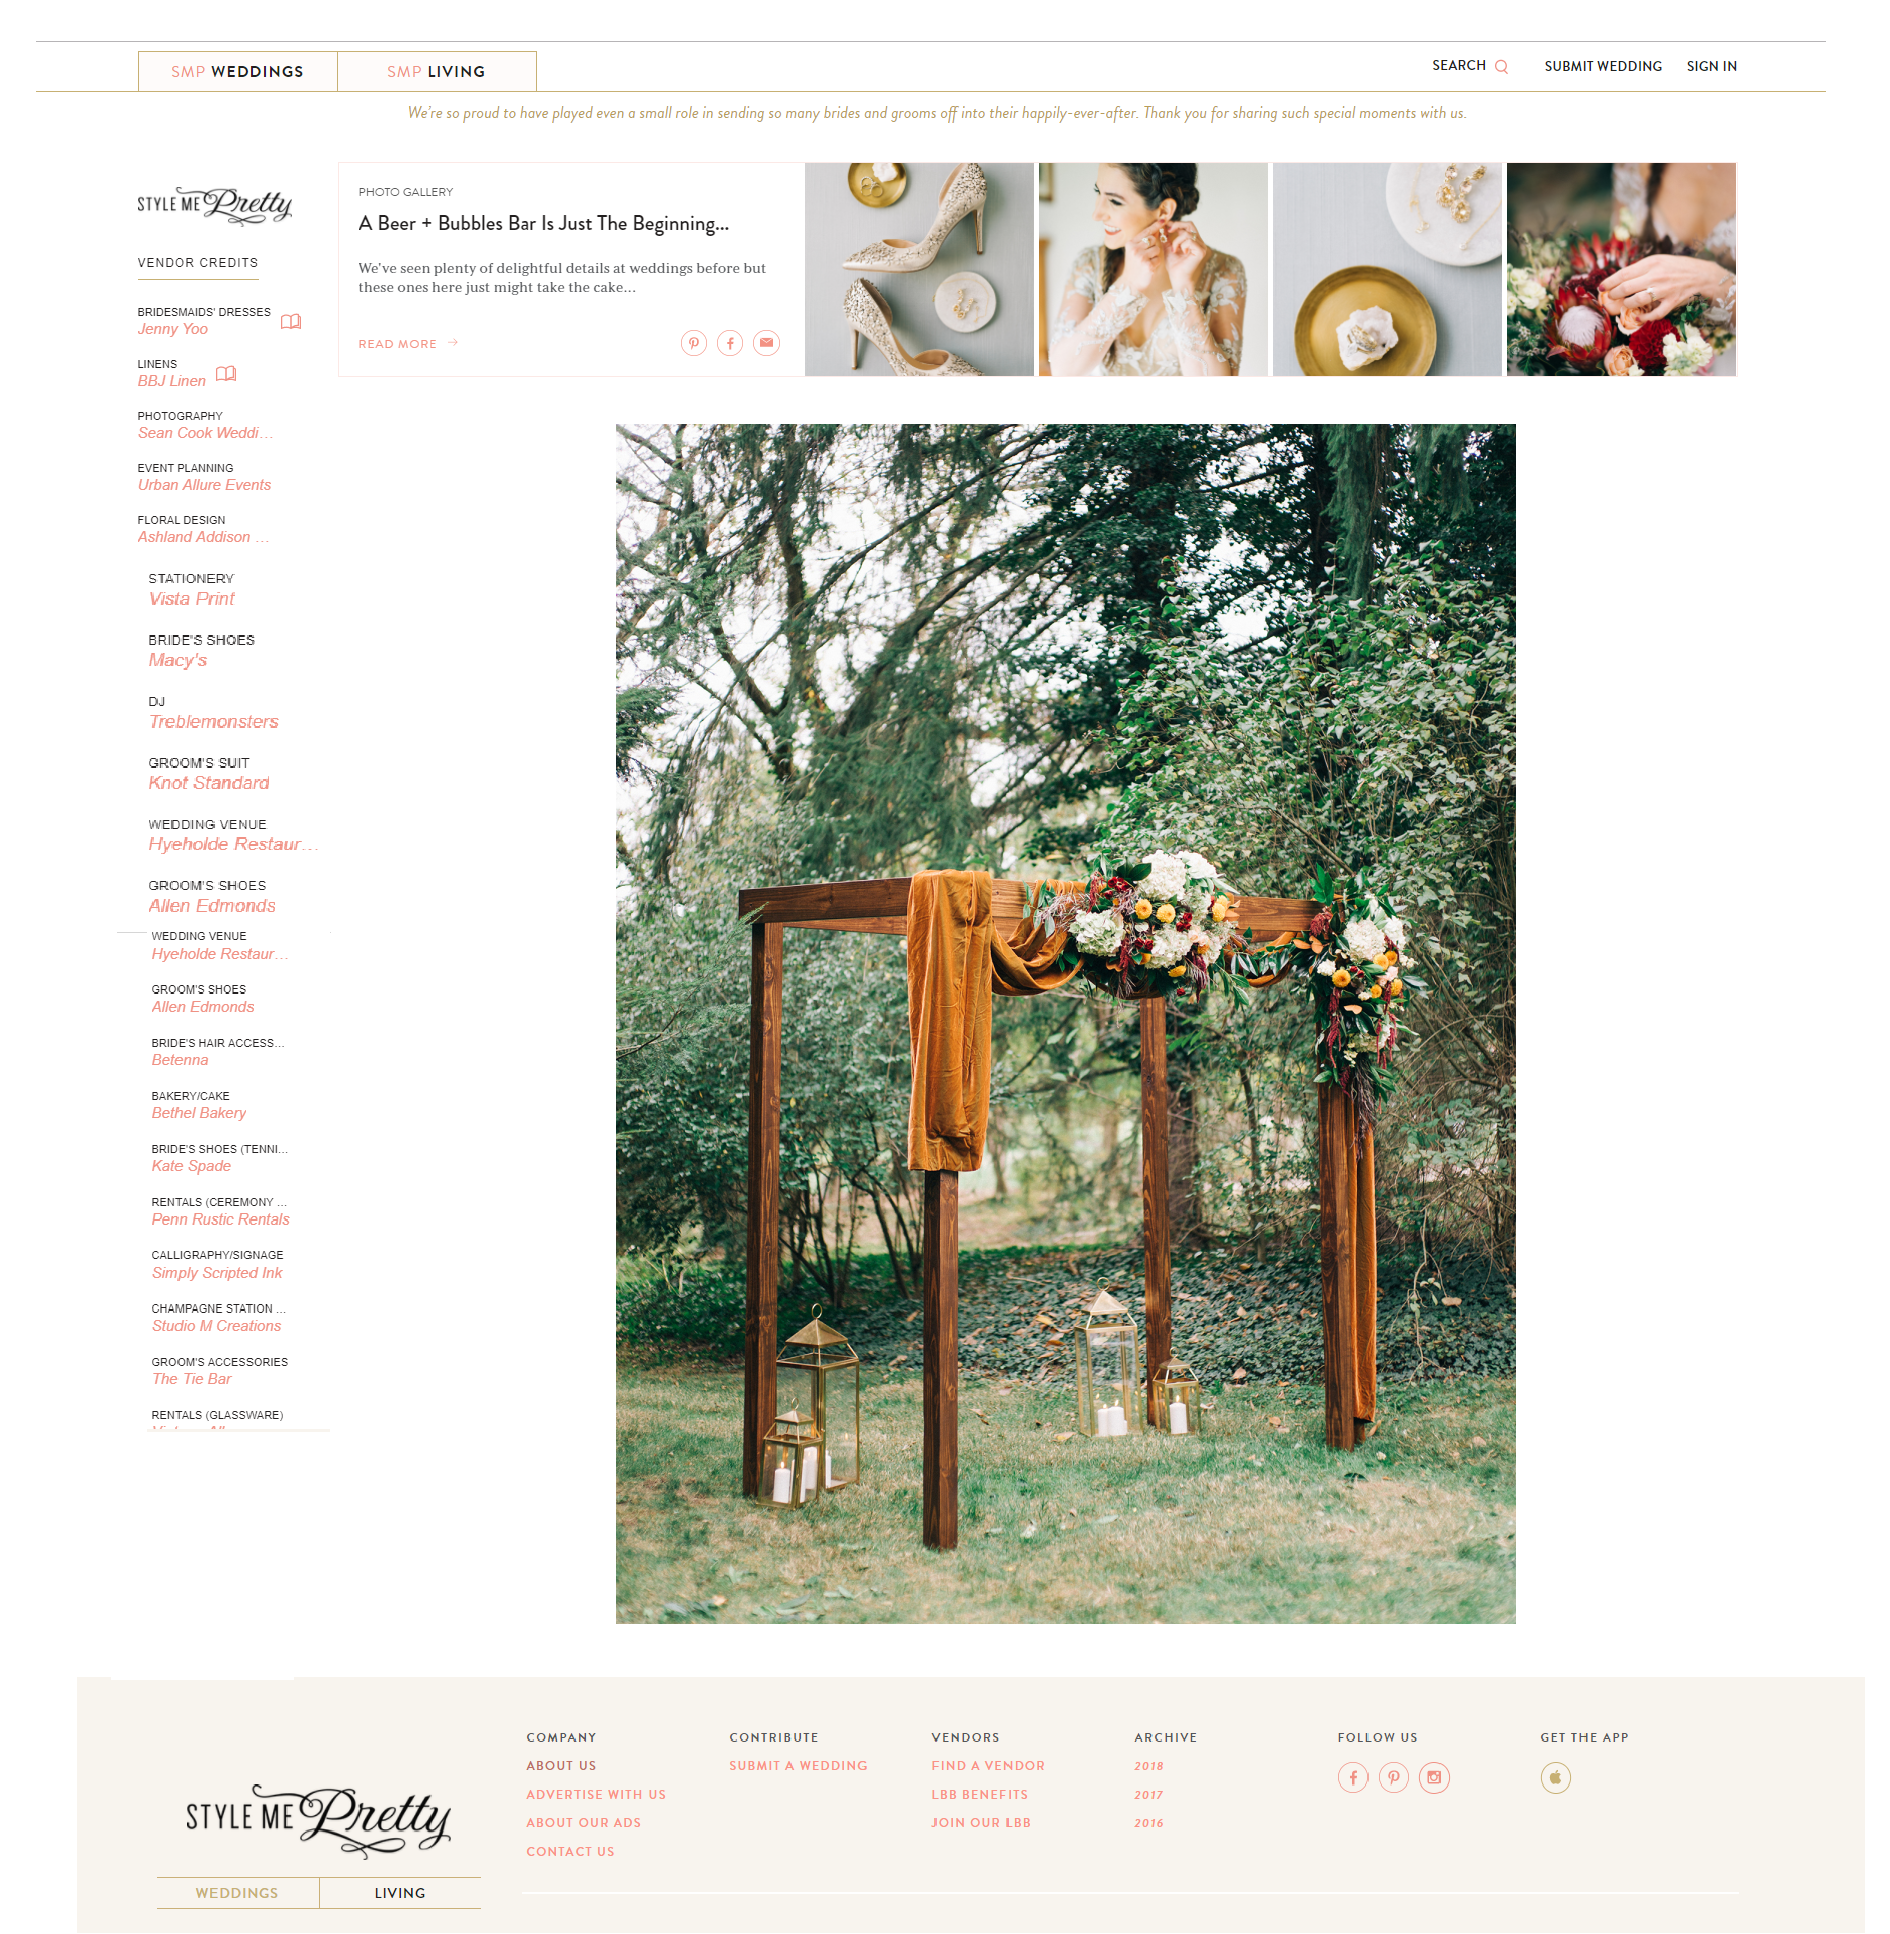 Style Me Pretty Feature_Maitland-Fauls Wedding_2018_Wood Arch6.png